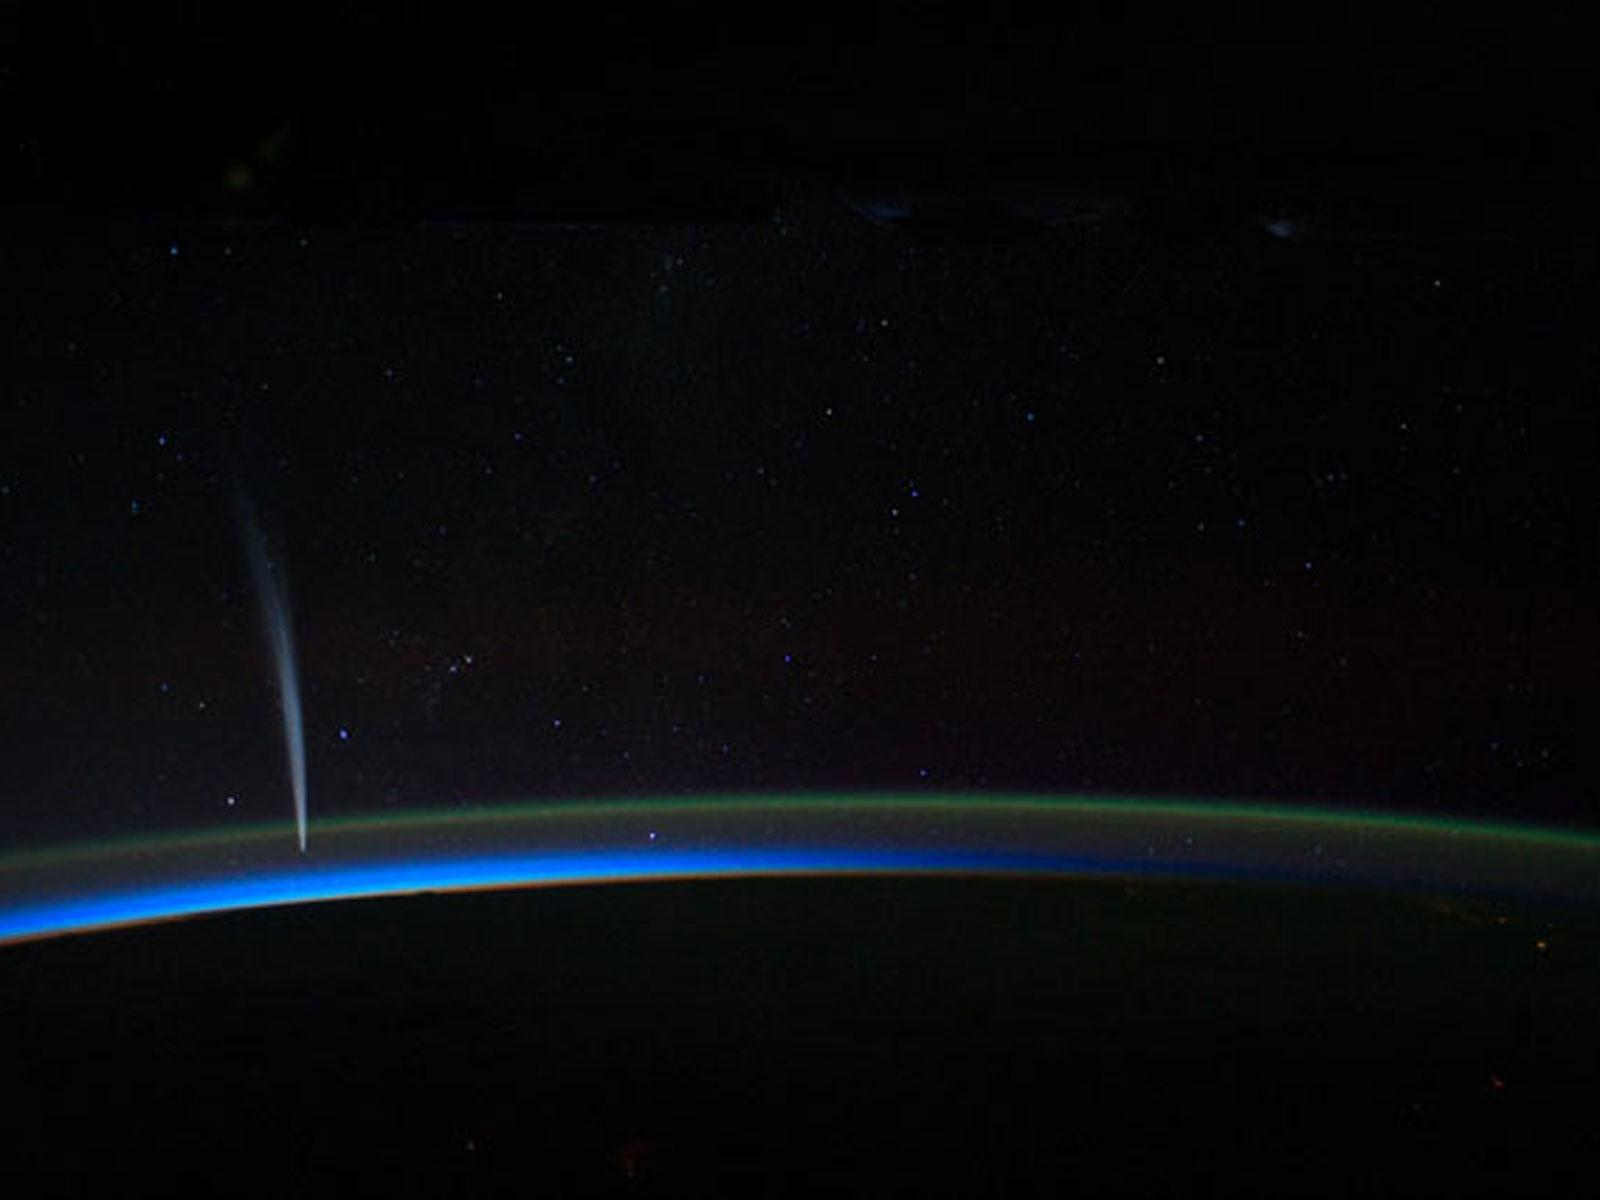 Spectacular Photos: Astronaut Sees Dazzling Comet From Space Station